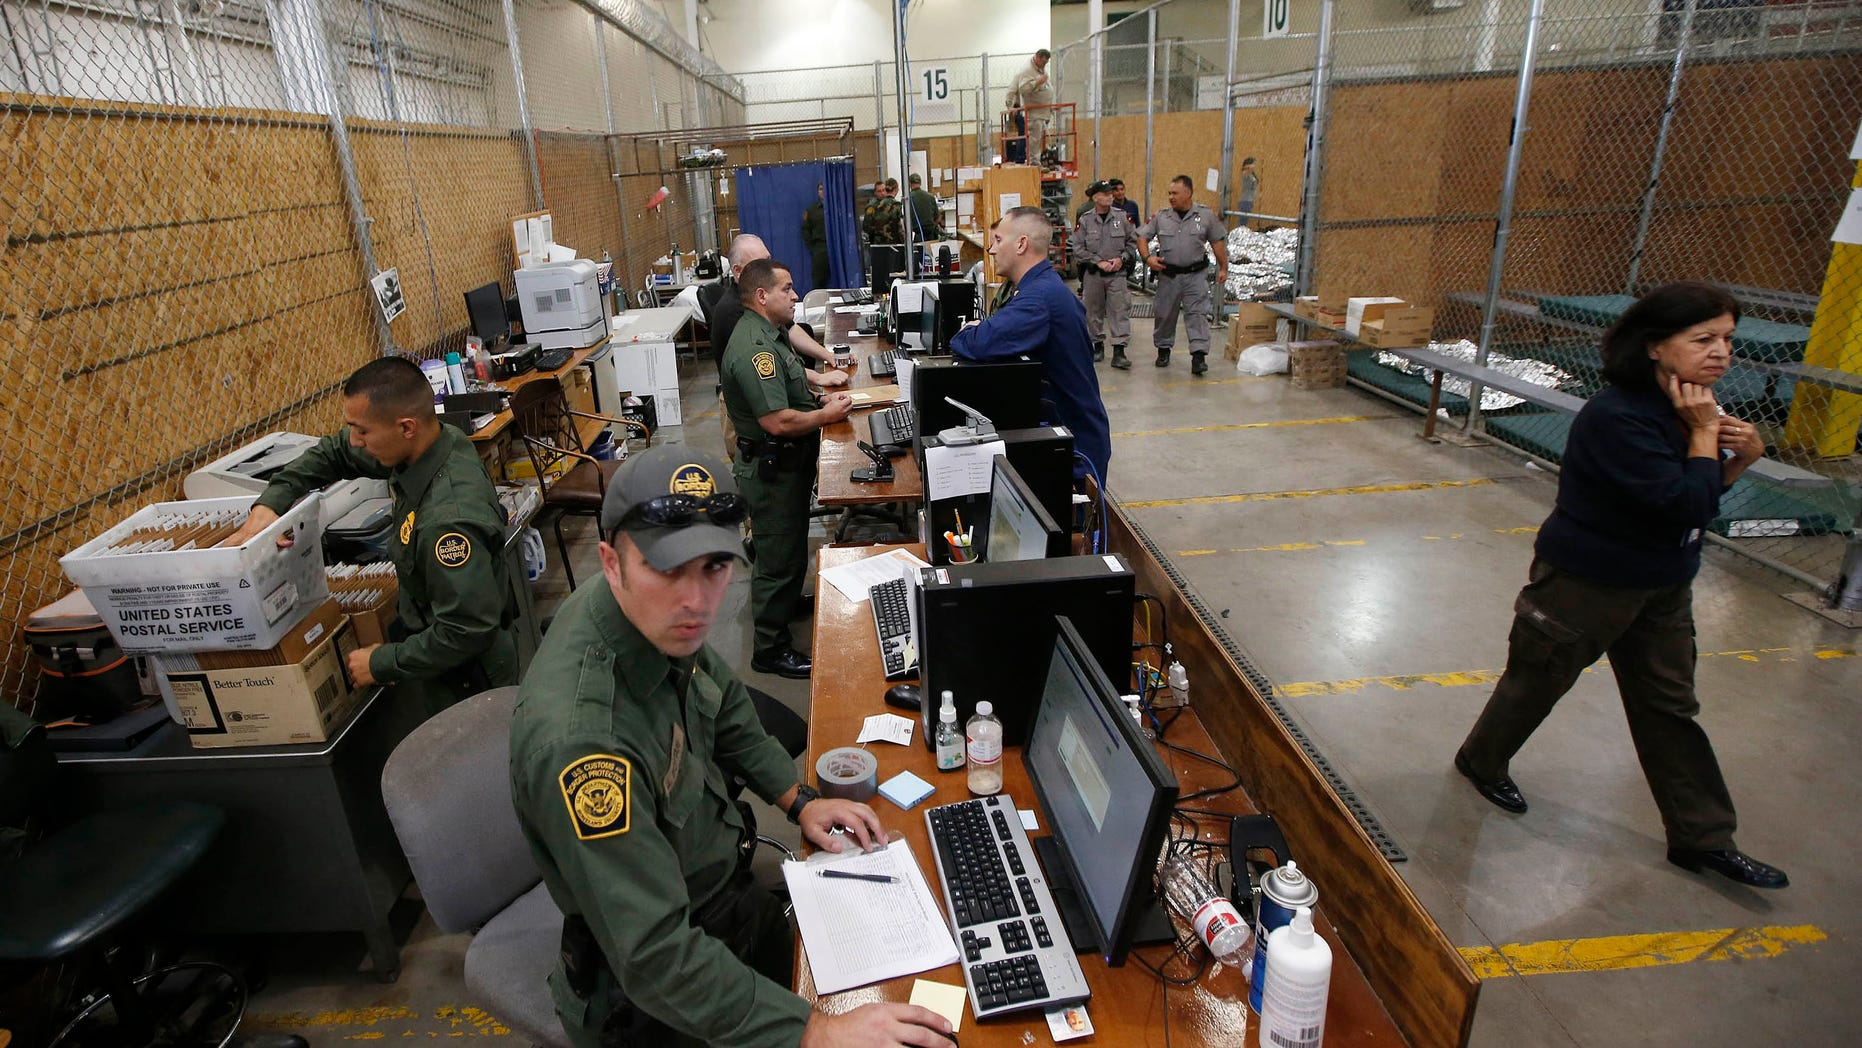 FILE: June 18, 2014: U.S. Customs and Border Protection at the Customs and Border Protection Nogales Placement Center in Nogales, Ariz.